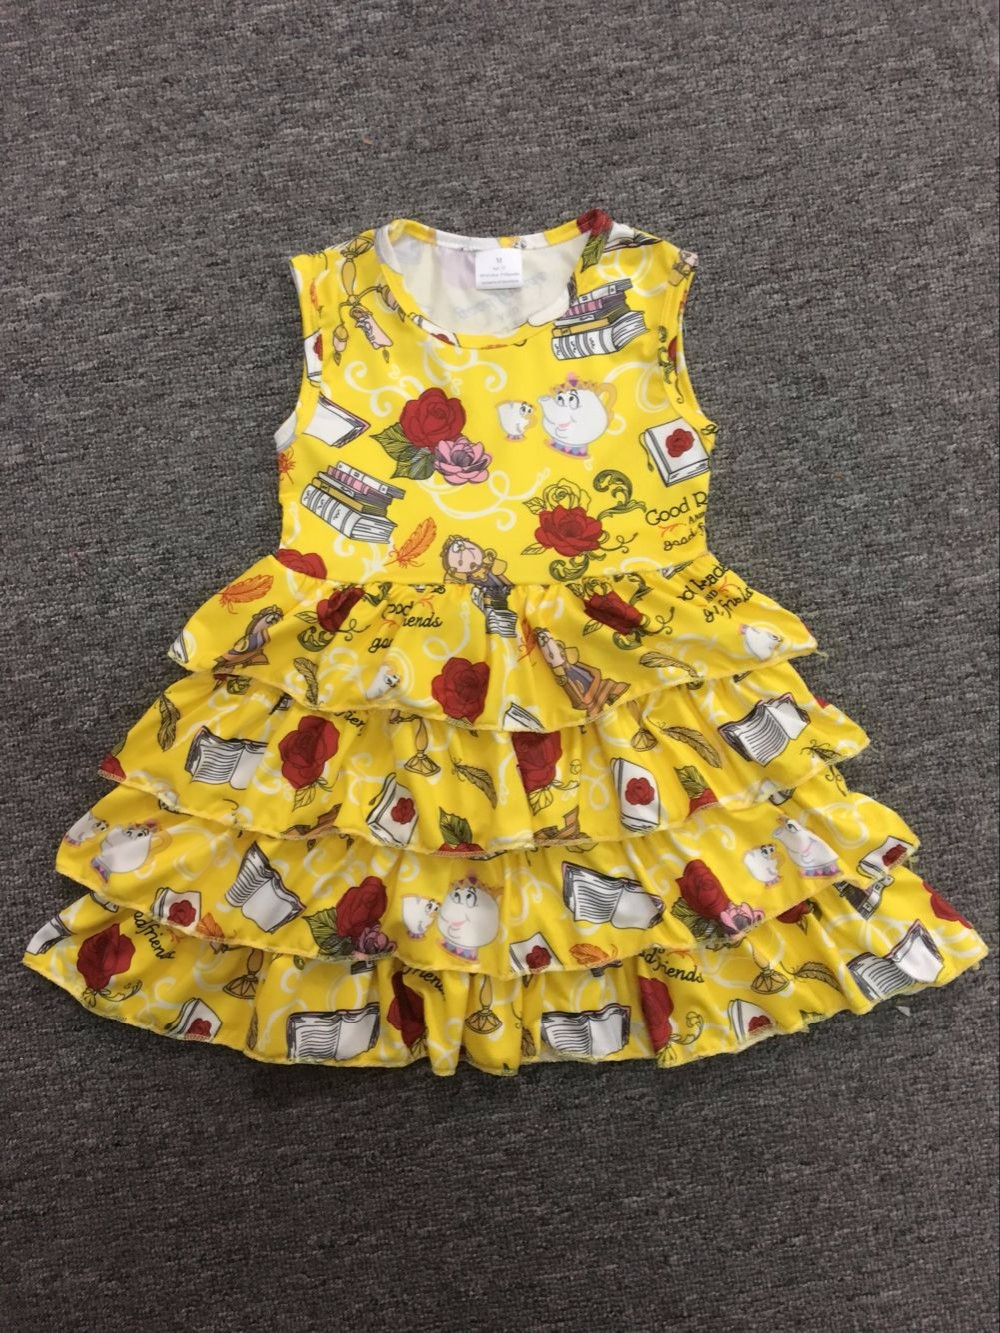 High quality patriotic outfit lovely baby fireworks print summer outfit for 4th of july